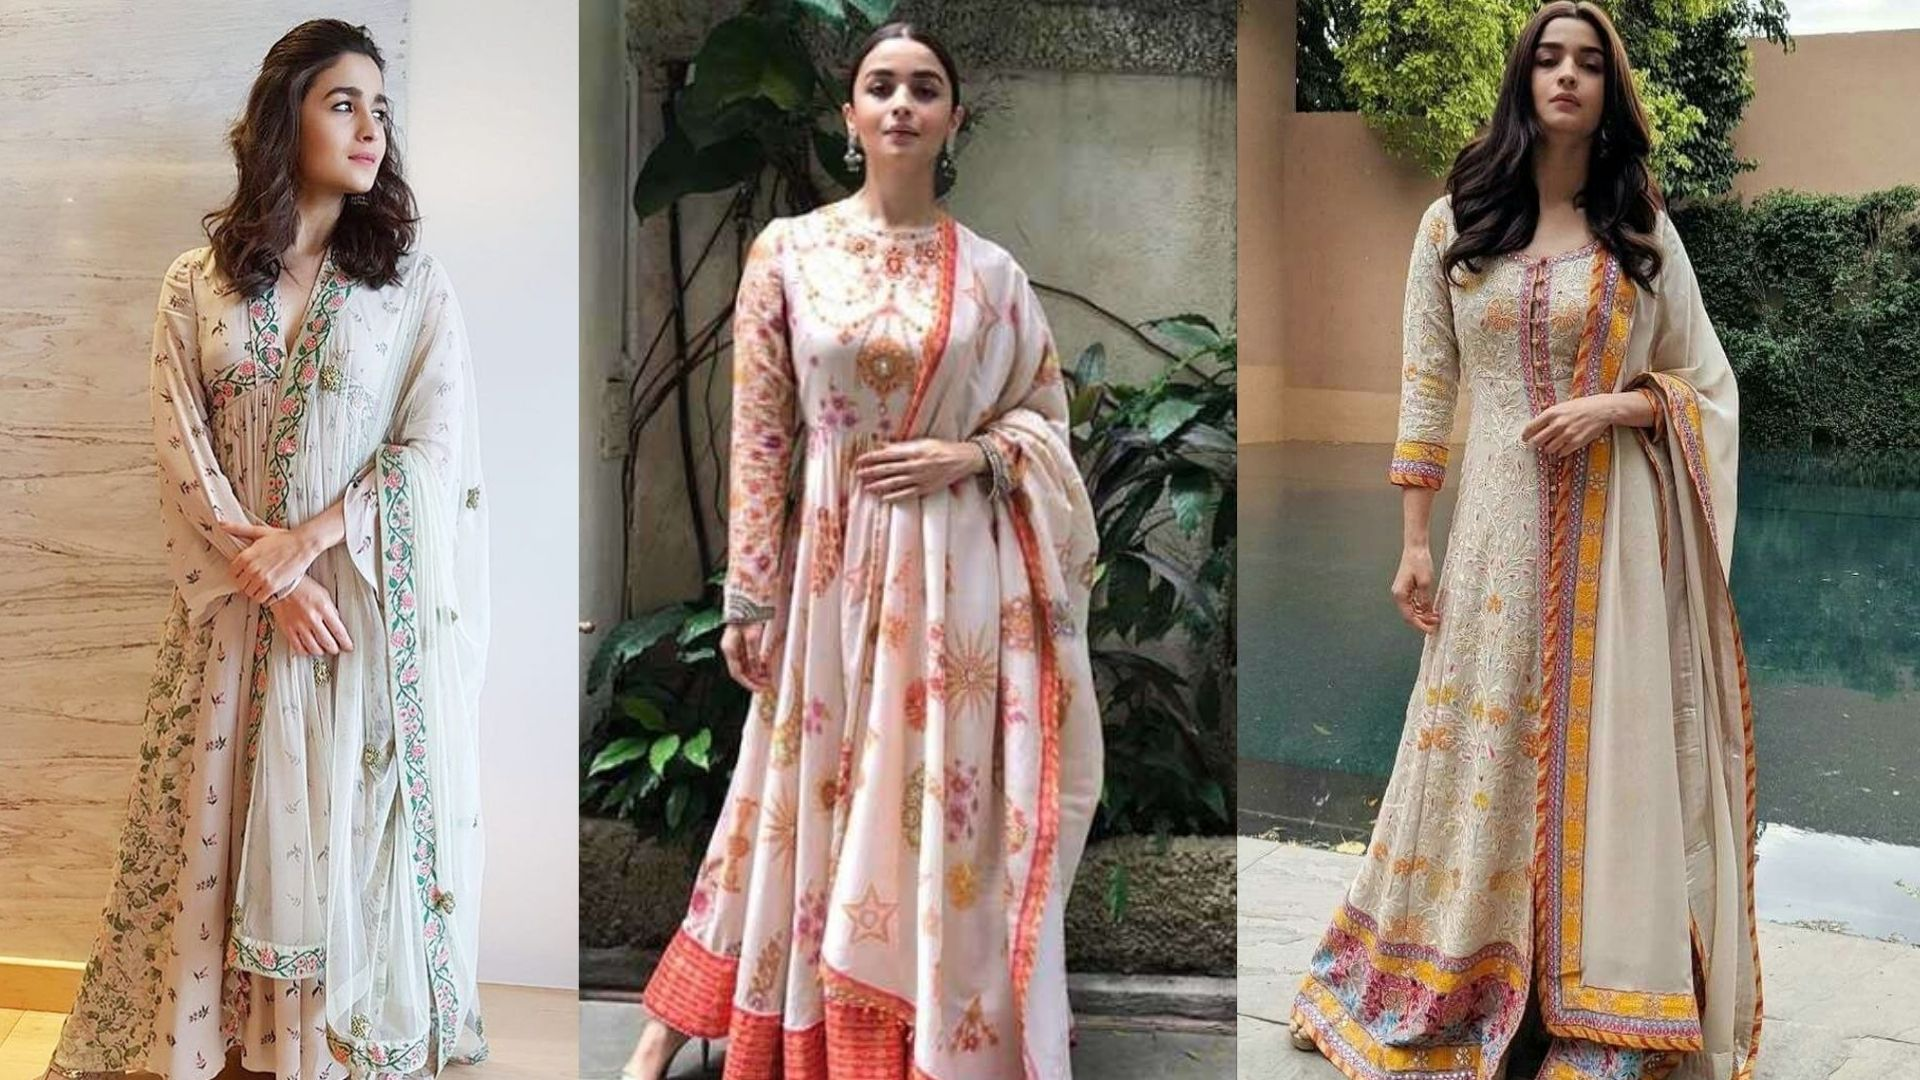 Alia Bhatt's Top 3 Ethnic Looks In Pastel Shades That Are Perfect For The Wedding Season